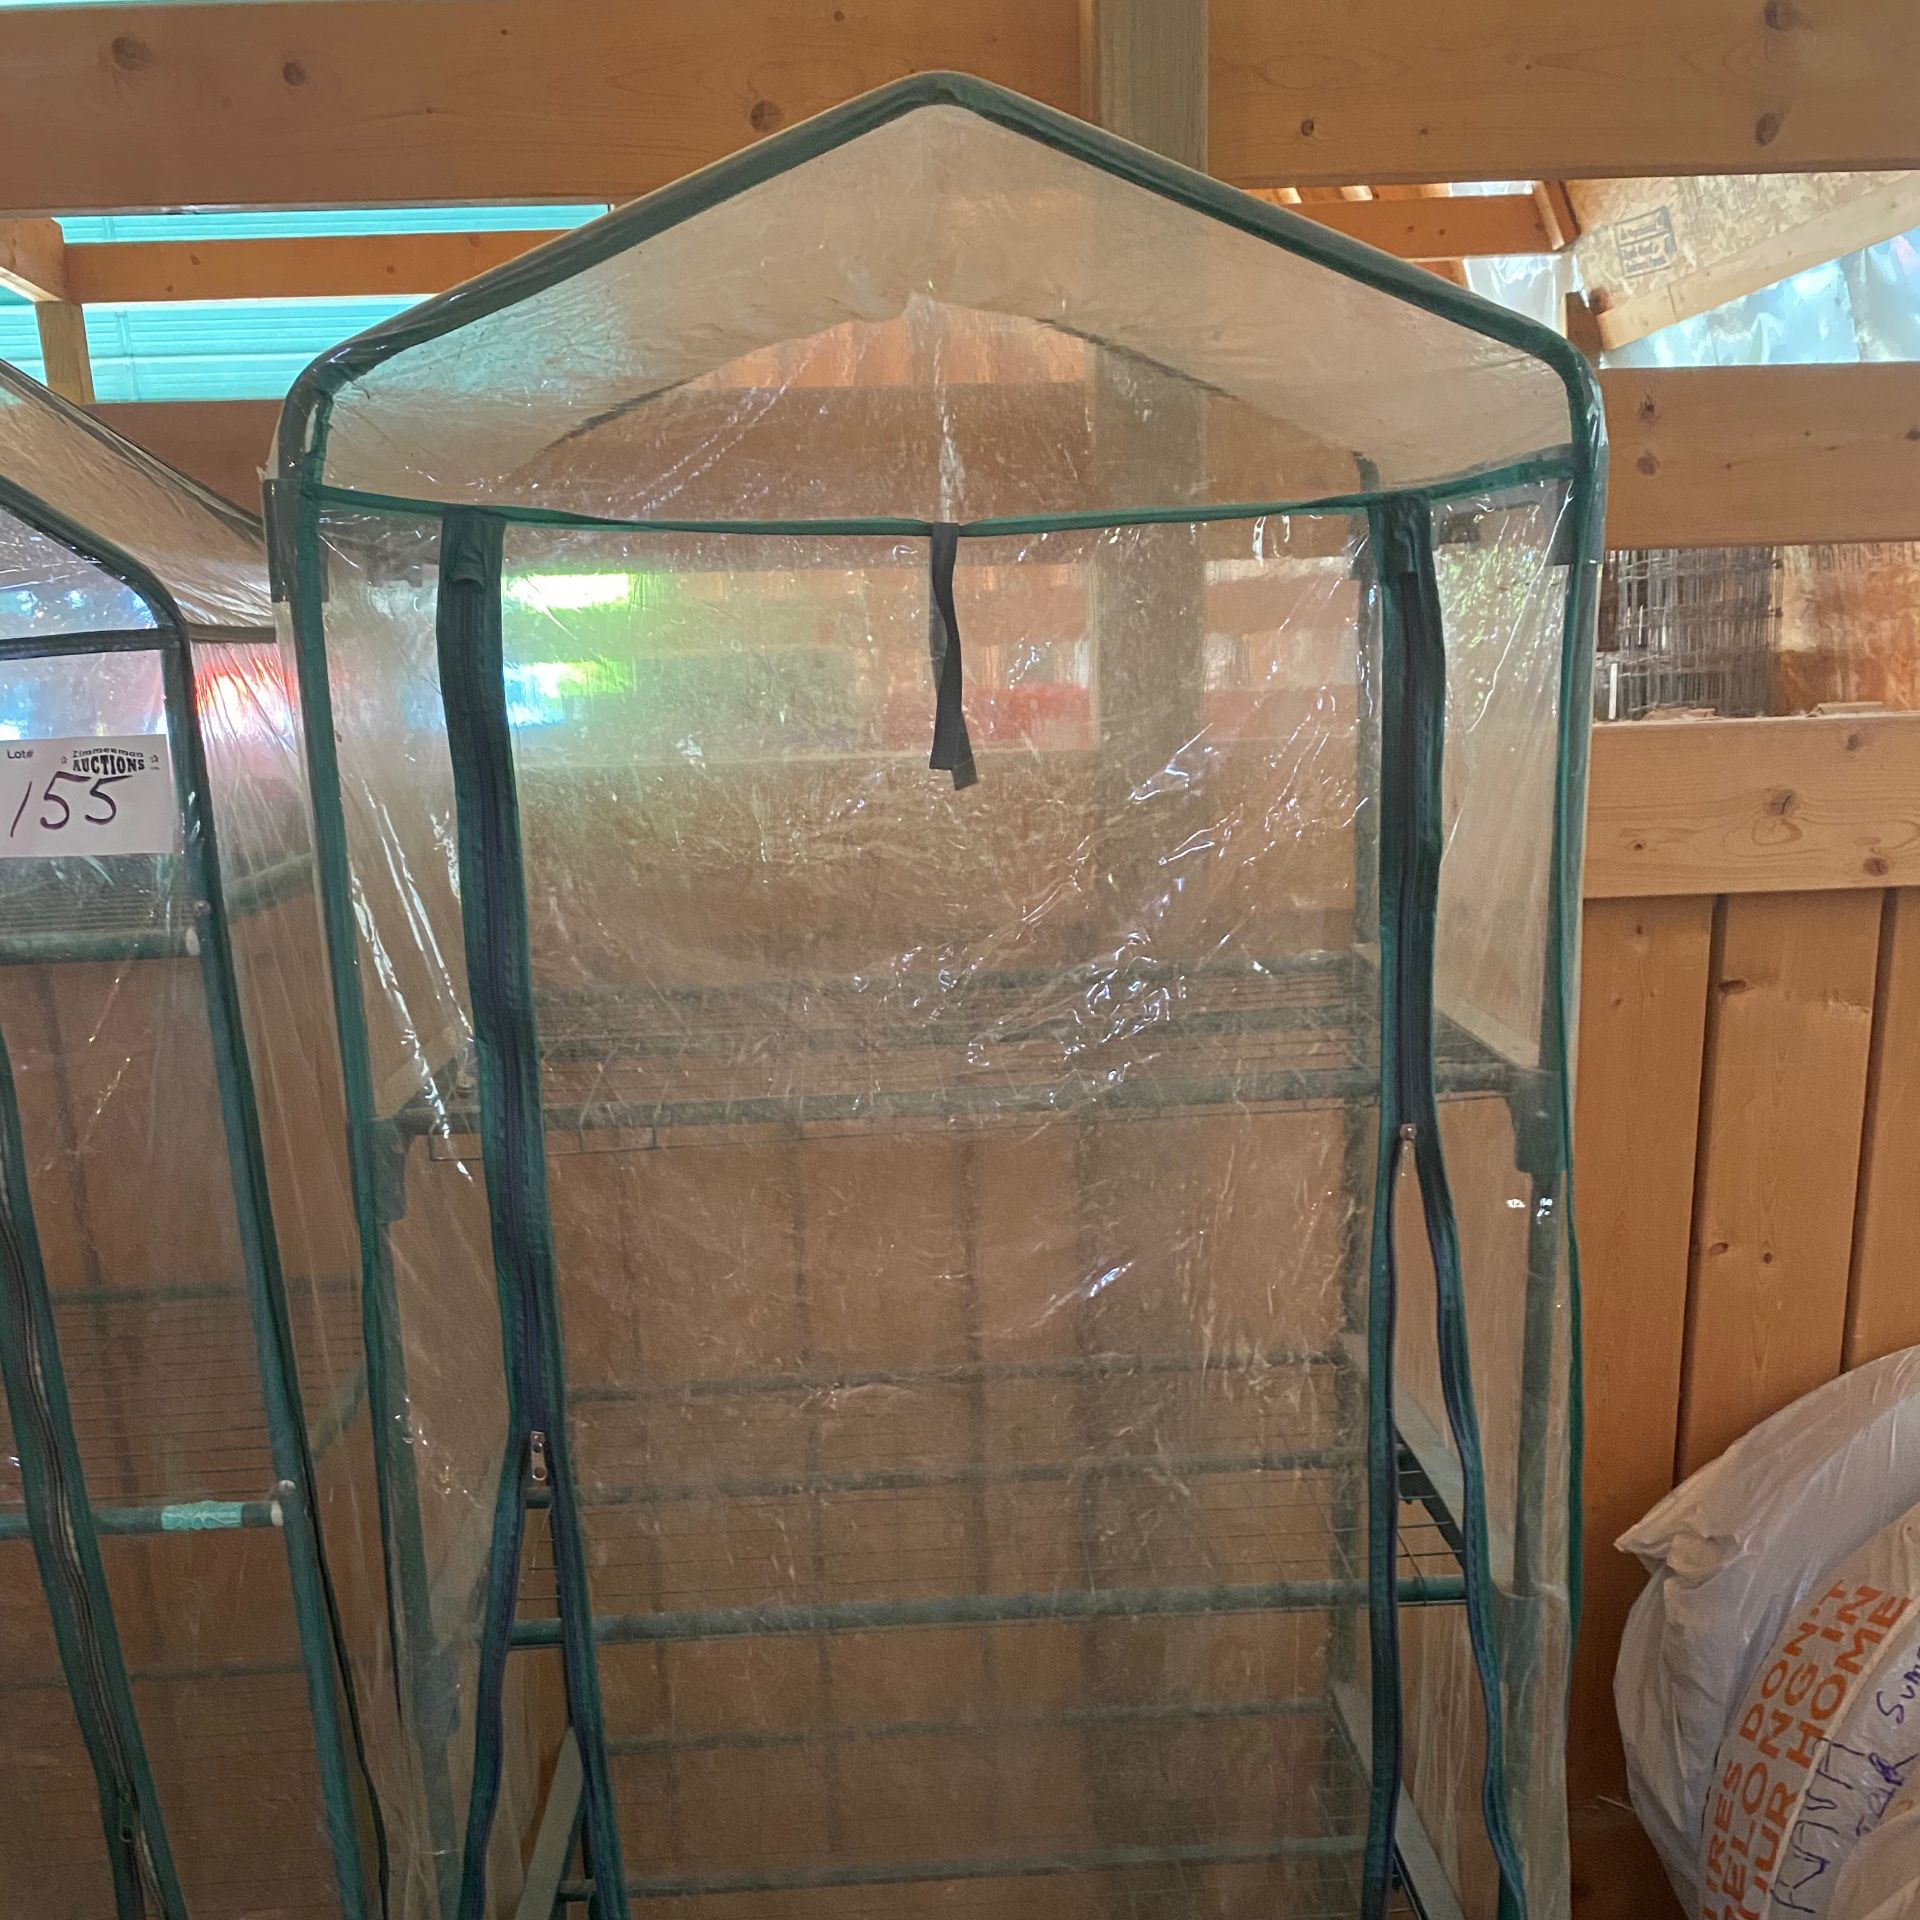 Lot 155 - 2 Green Houses